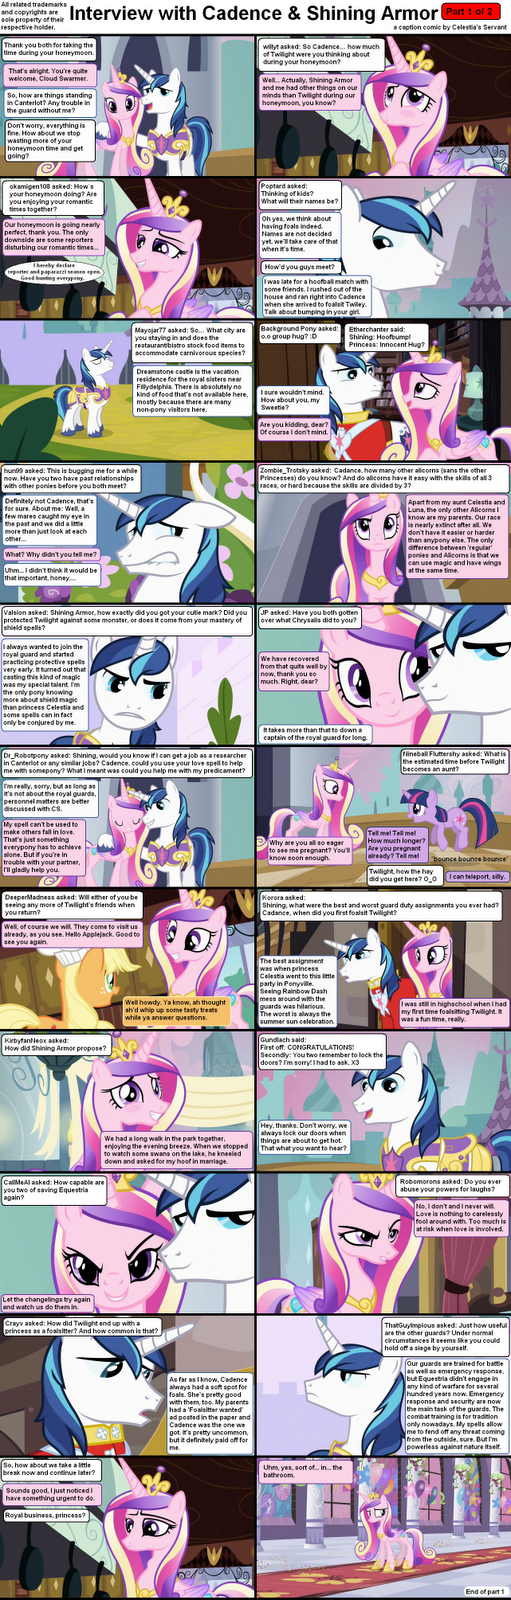 The sun mare's loyal servant: Interview with Cadence and